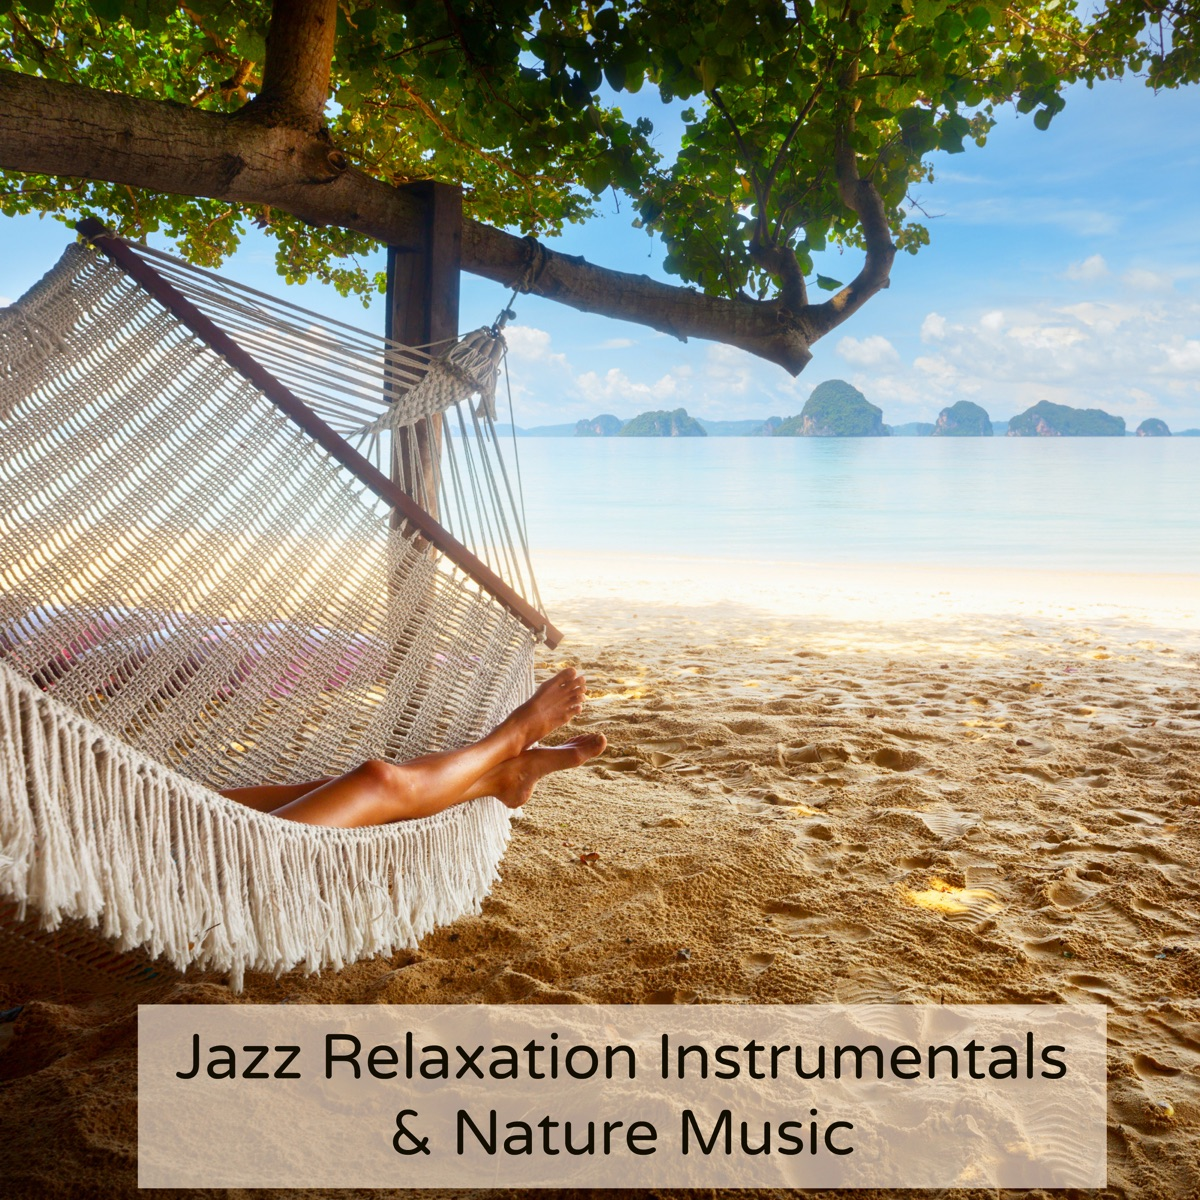 Jazz Relaxation Instrumentals & Nature Music Album Cover by